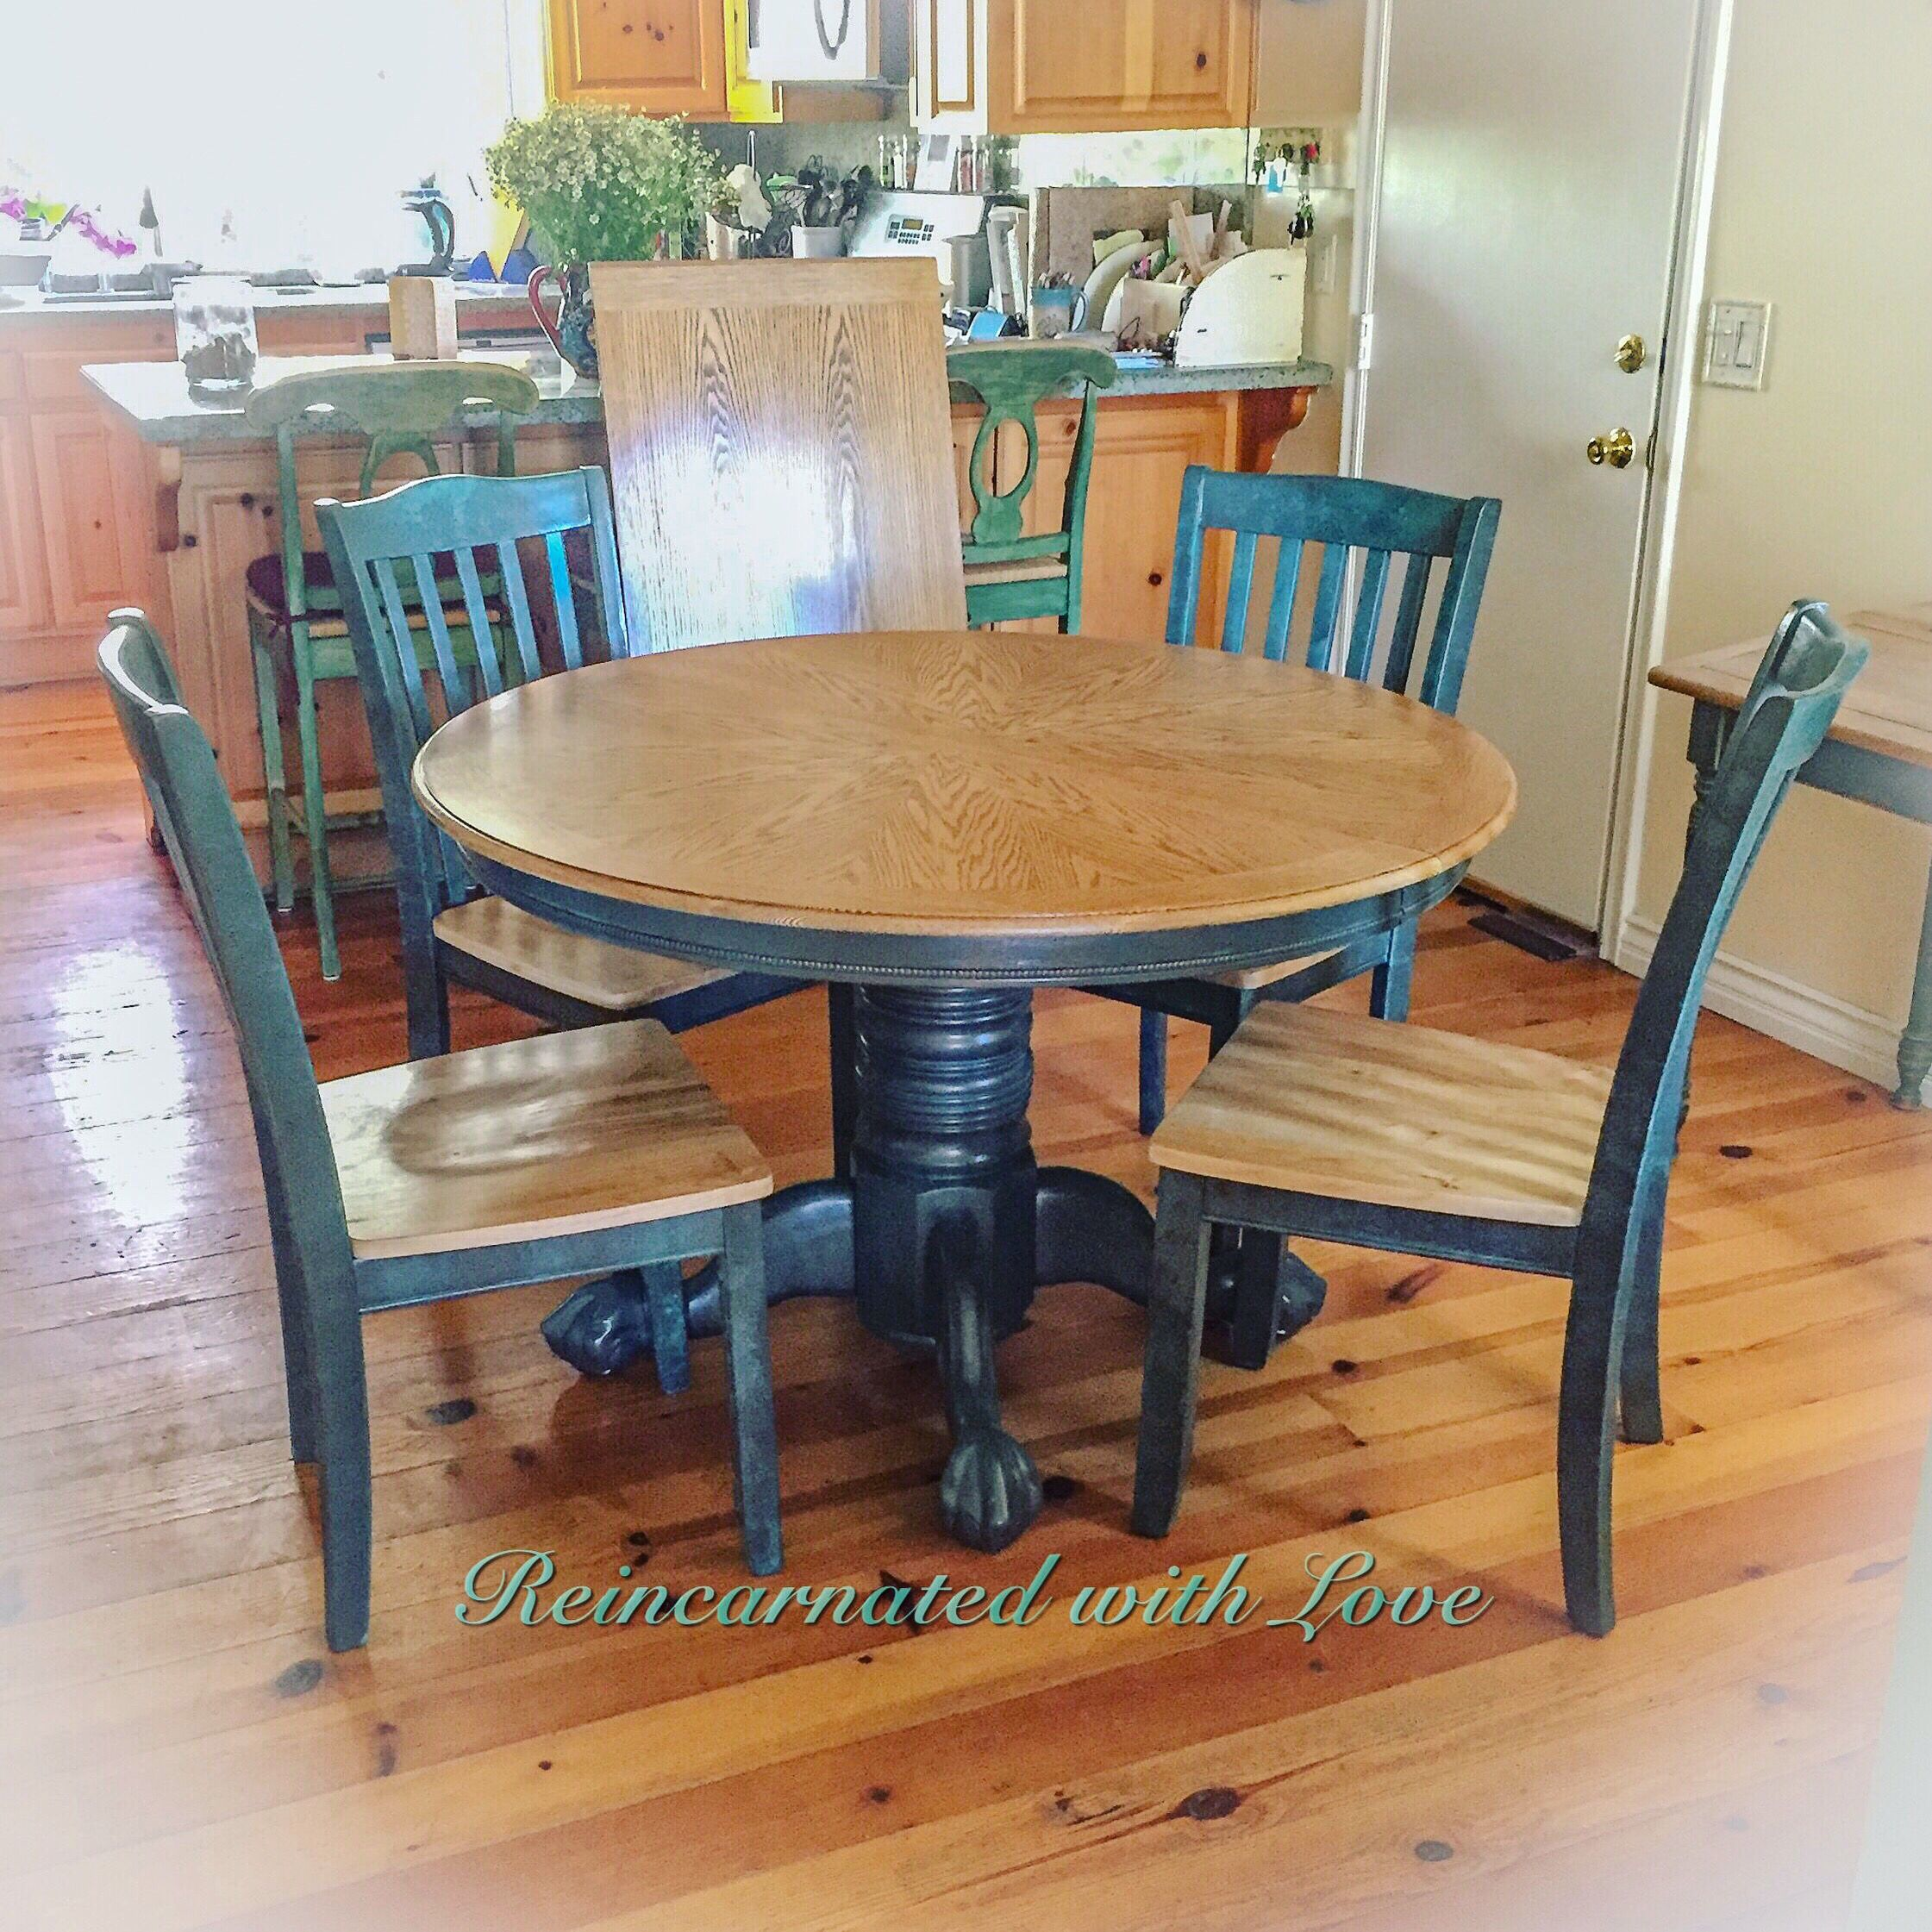 Shabby Chic Dining Set Pedestal Table Chairs With Matching Extension Leaf Shabby Chic Dining Table Blue Kitchen Tables Farmhouse Kitchen Tables